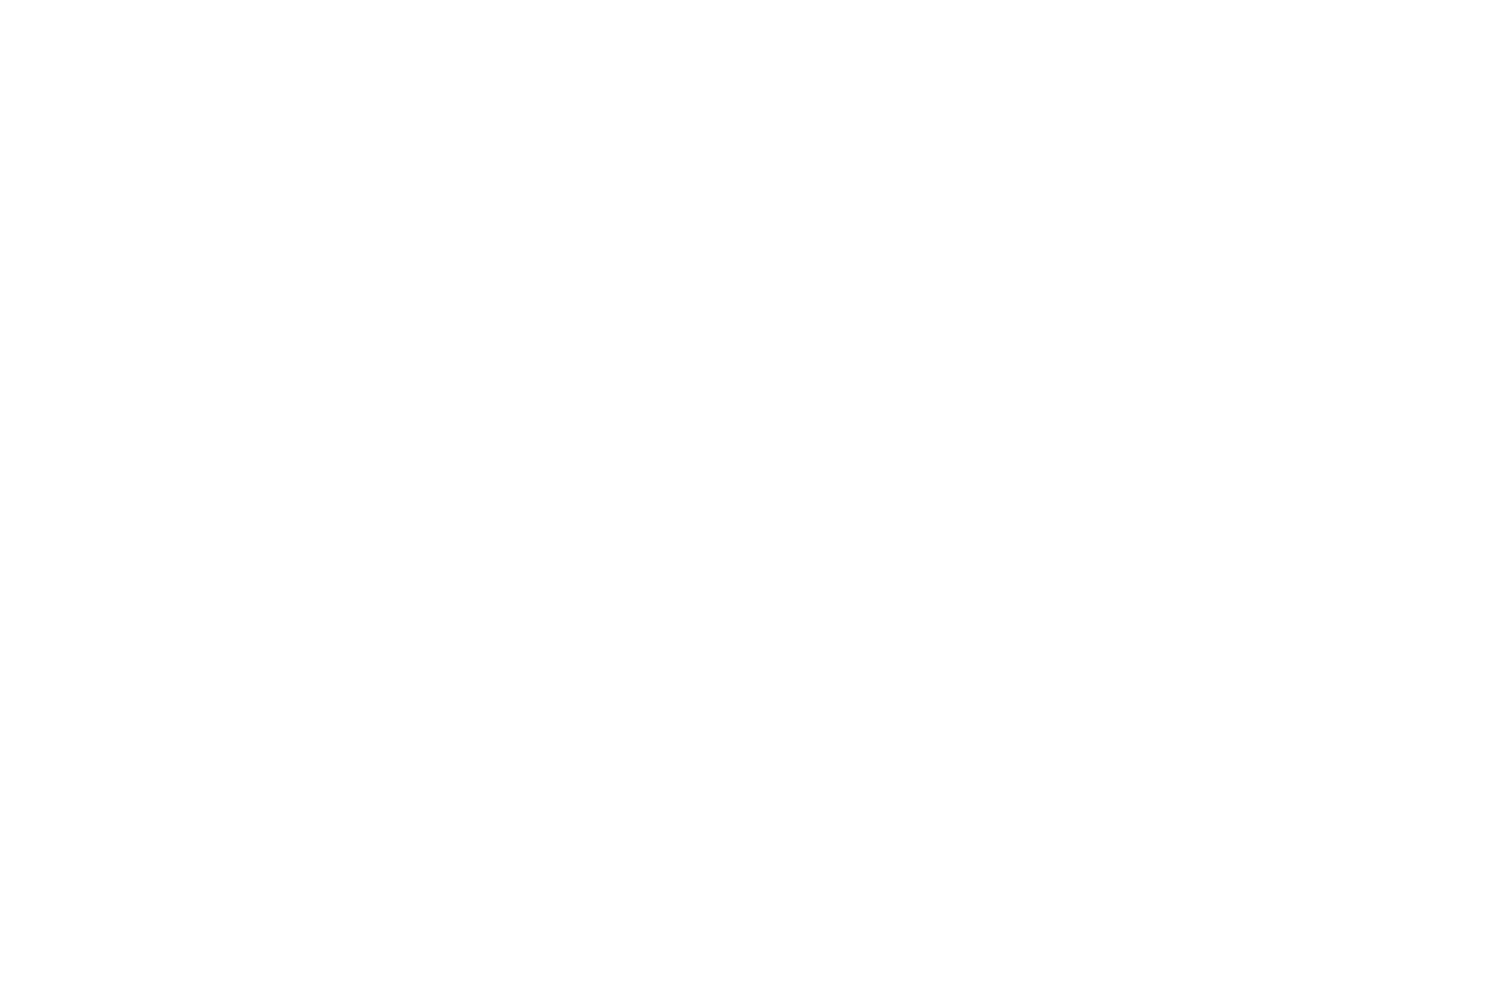 Our Unscripted Life